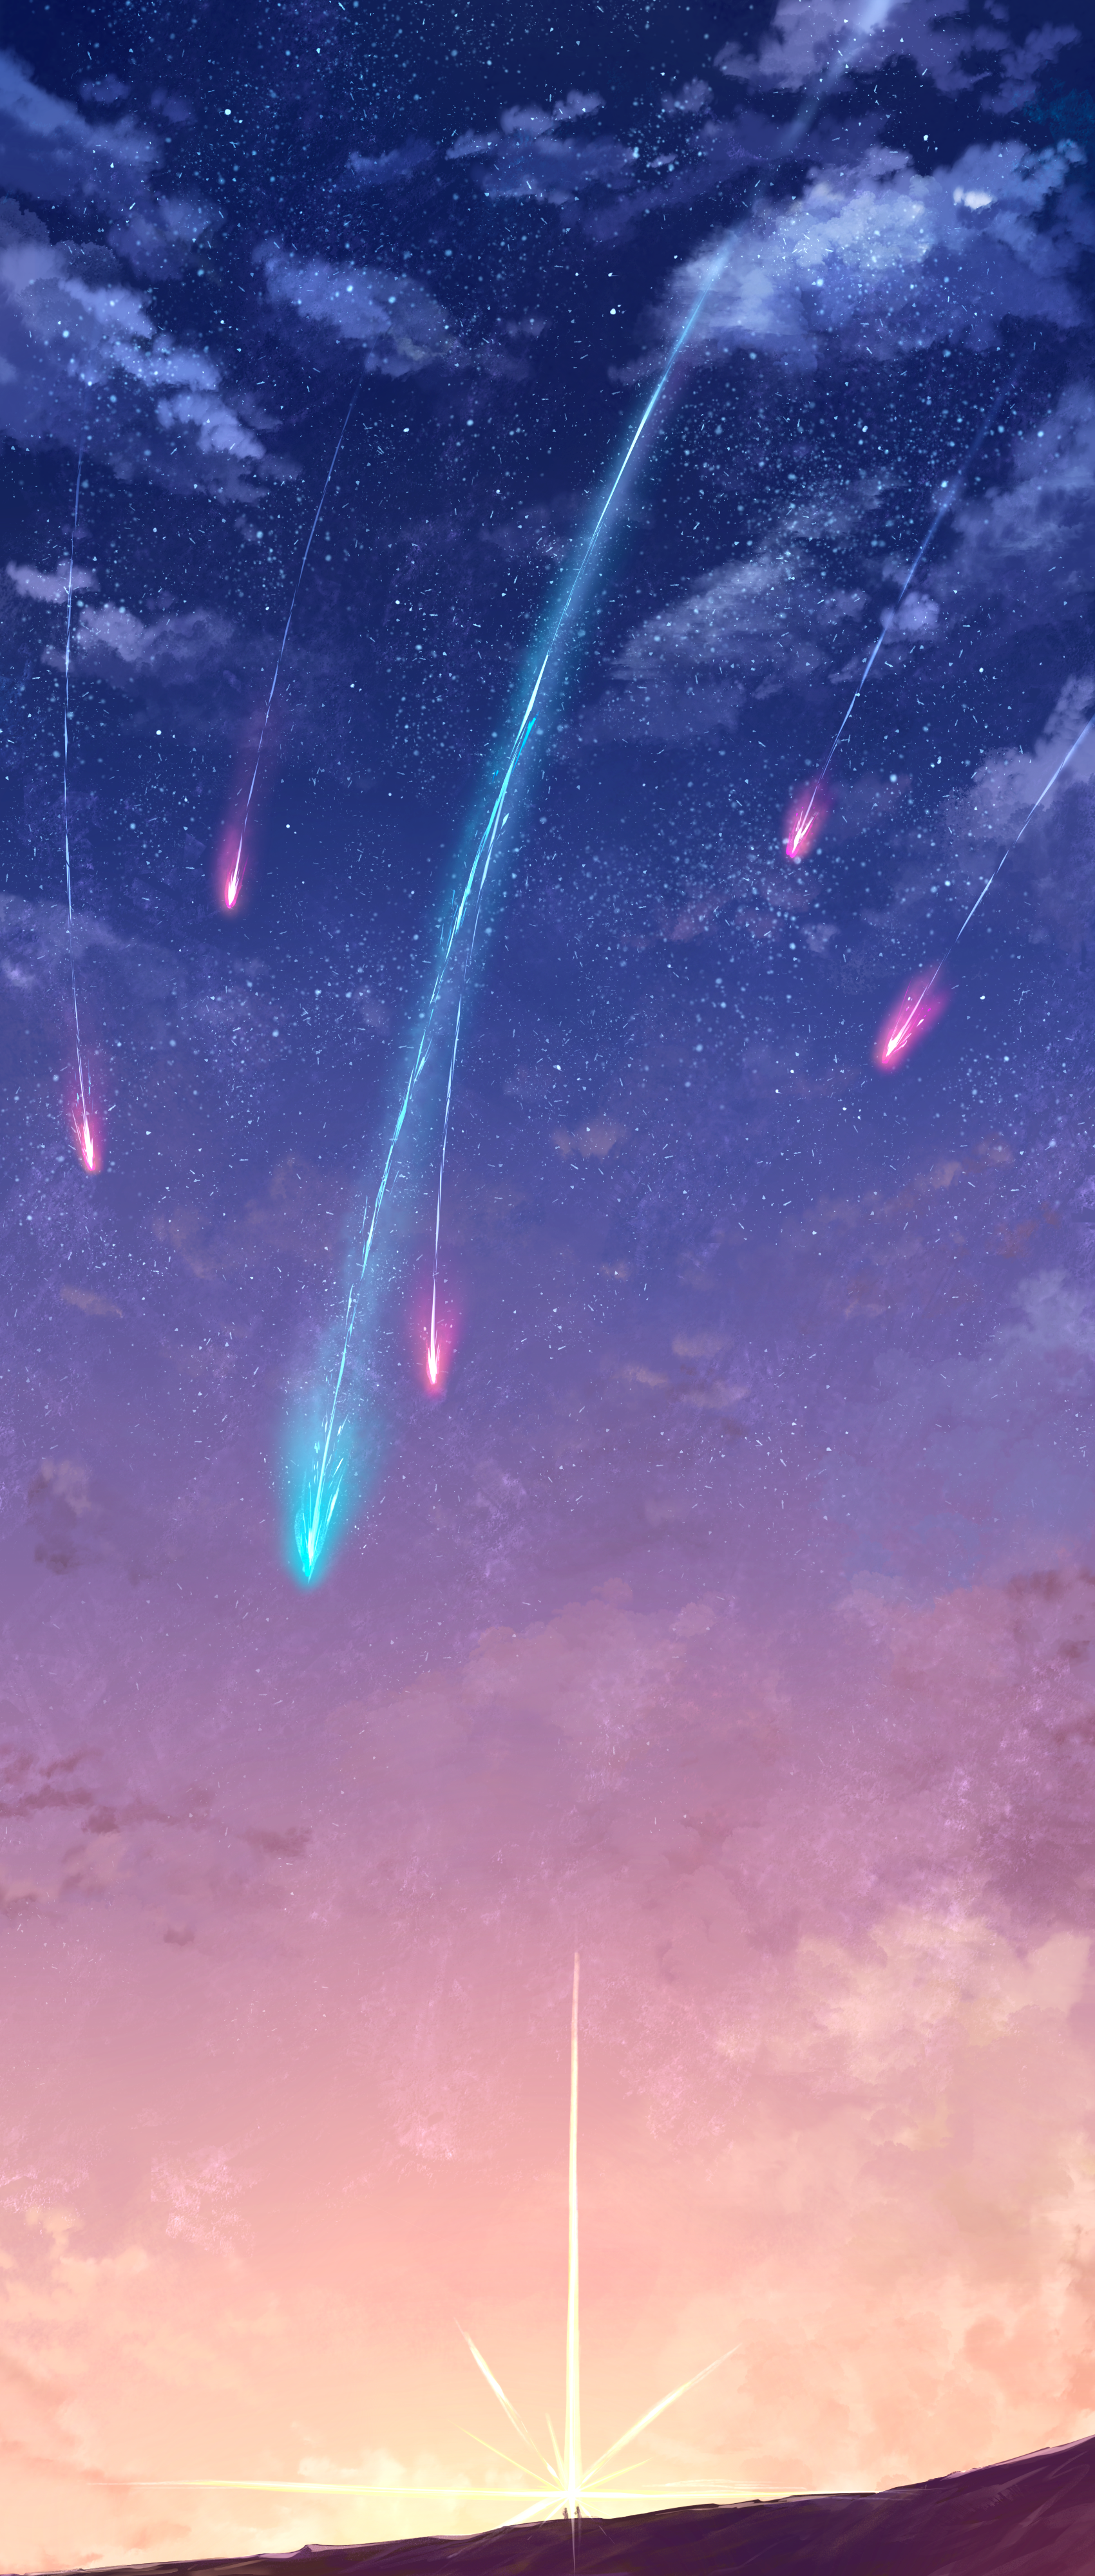 Your Name Phone Wallpaper Posted By Samantha Simpson